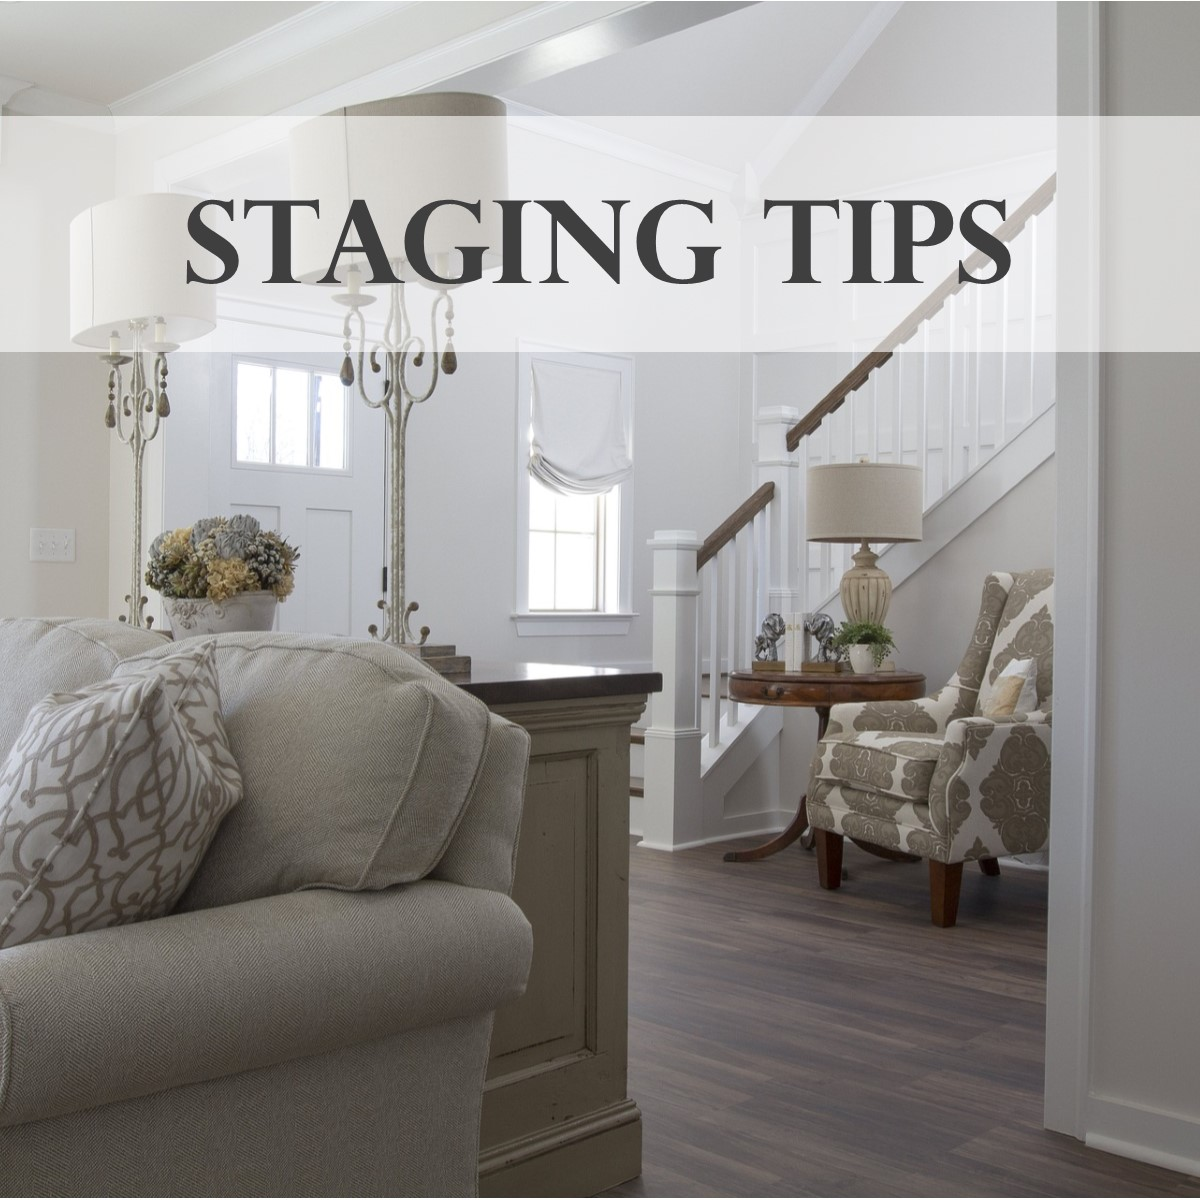 Maine Home Staging Tips - real estate leader, maine homes for sale, maine real estate, maine realtors, fontaine family, fontaine